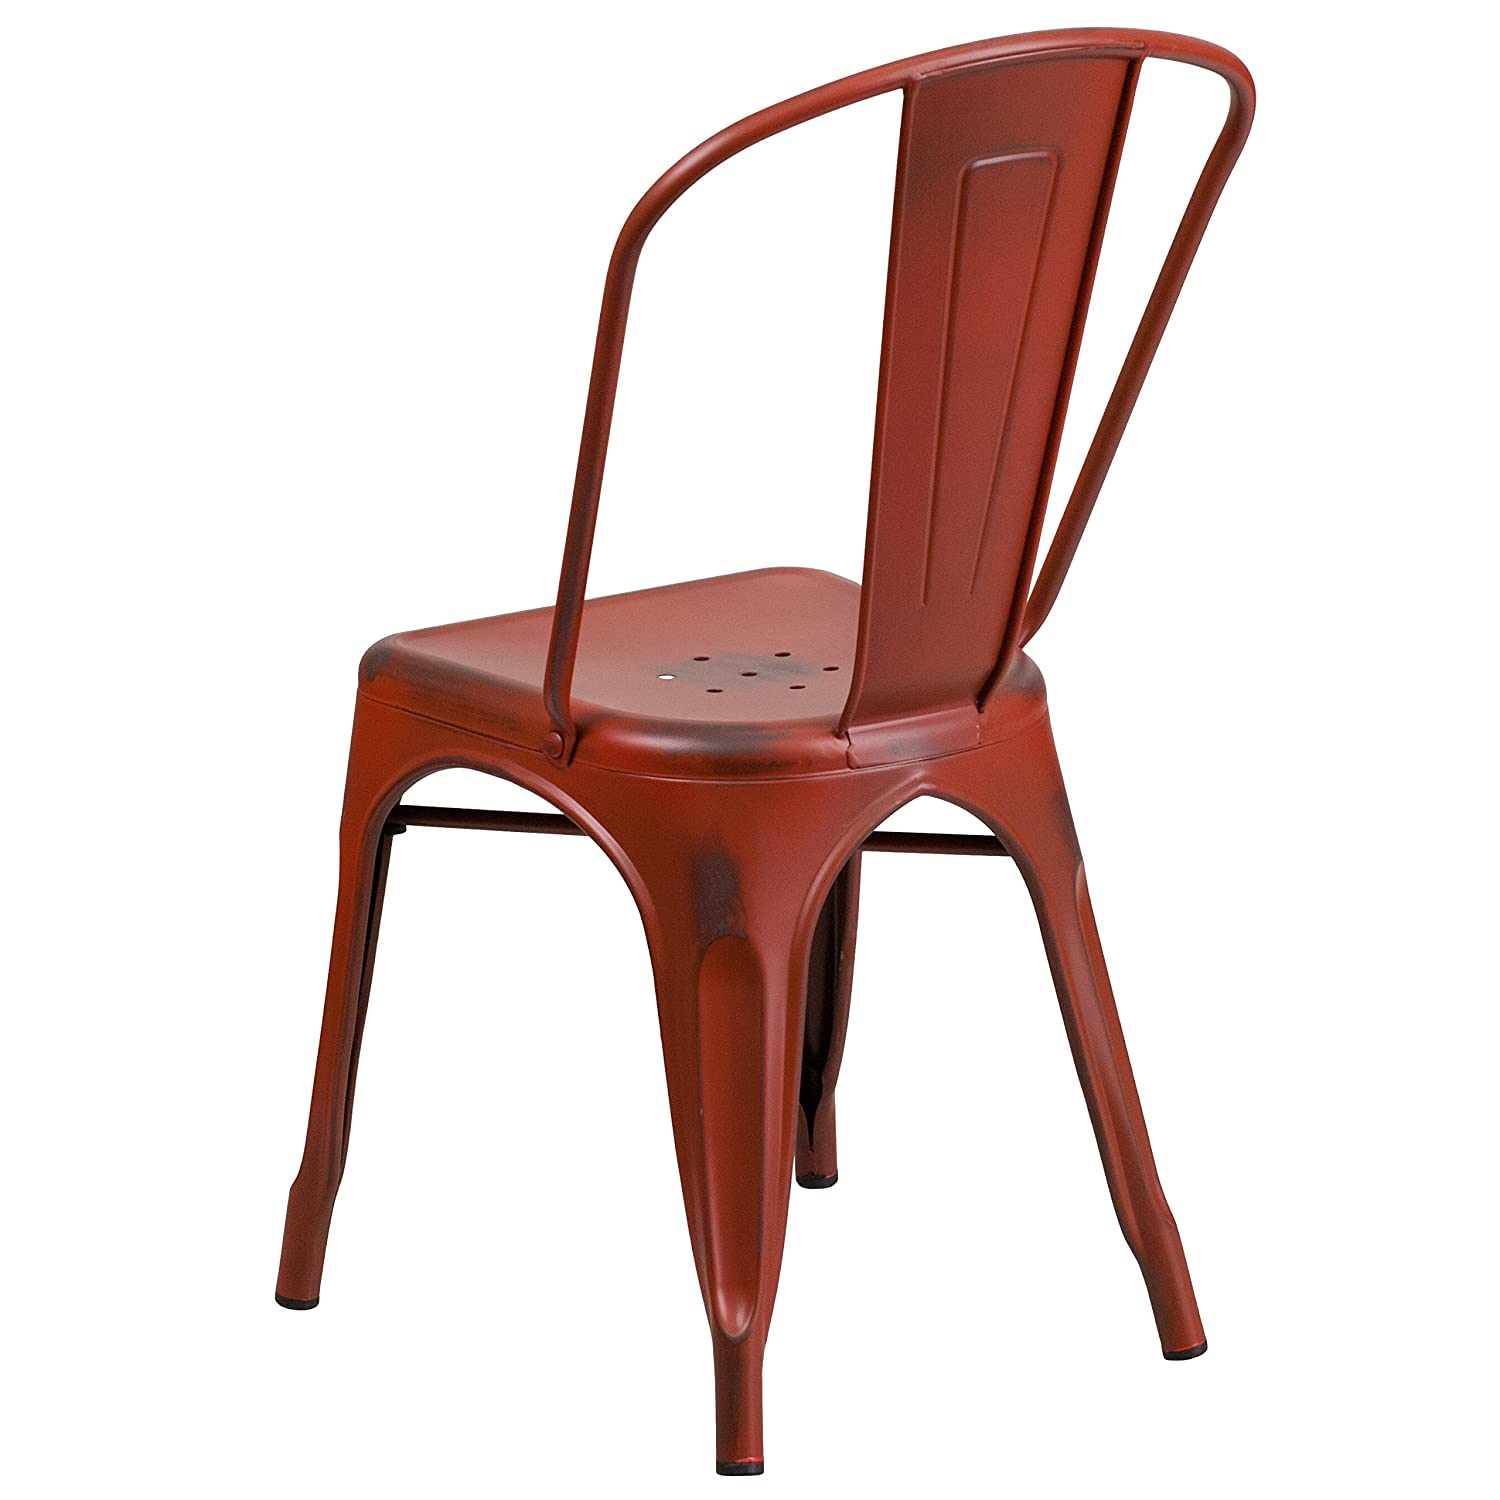 distressed metal furniture. Amazon.com: Flash Furniture Distressed Kelly Red Metal Indoor-Outdoor  Stackable Chair: Kitchen \u0026 Dining Distressed Metal Furniture U